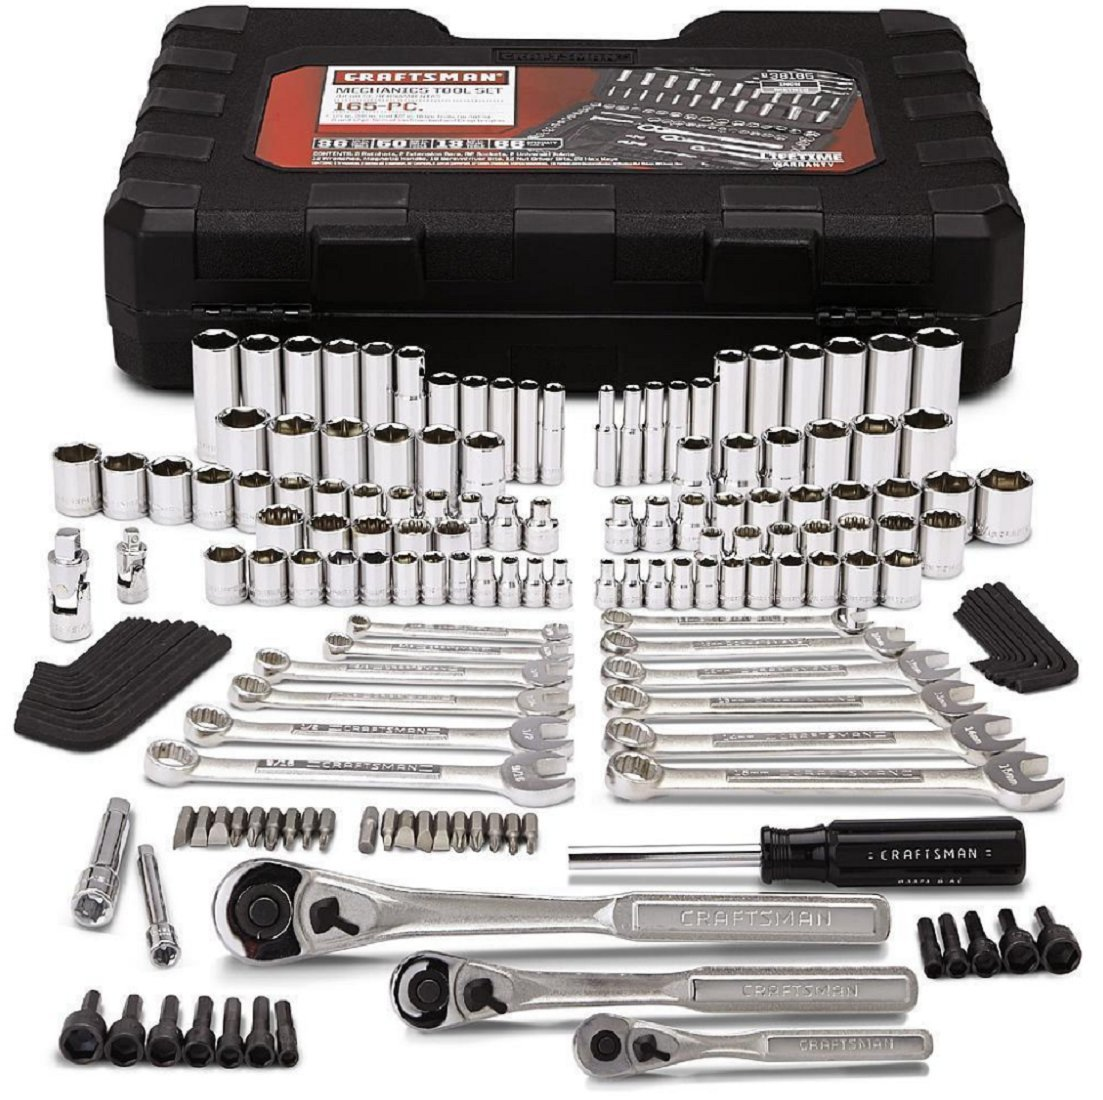 Craftsman Mechanics Tool Set Kit Wrenches Sockets Ratchet SAE Metric 165 Pc Case by Cherry's tools